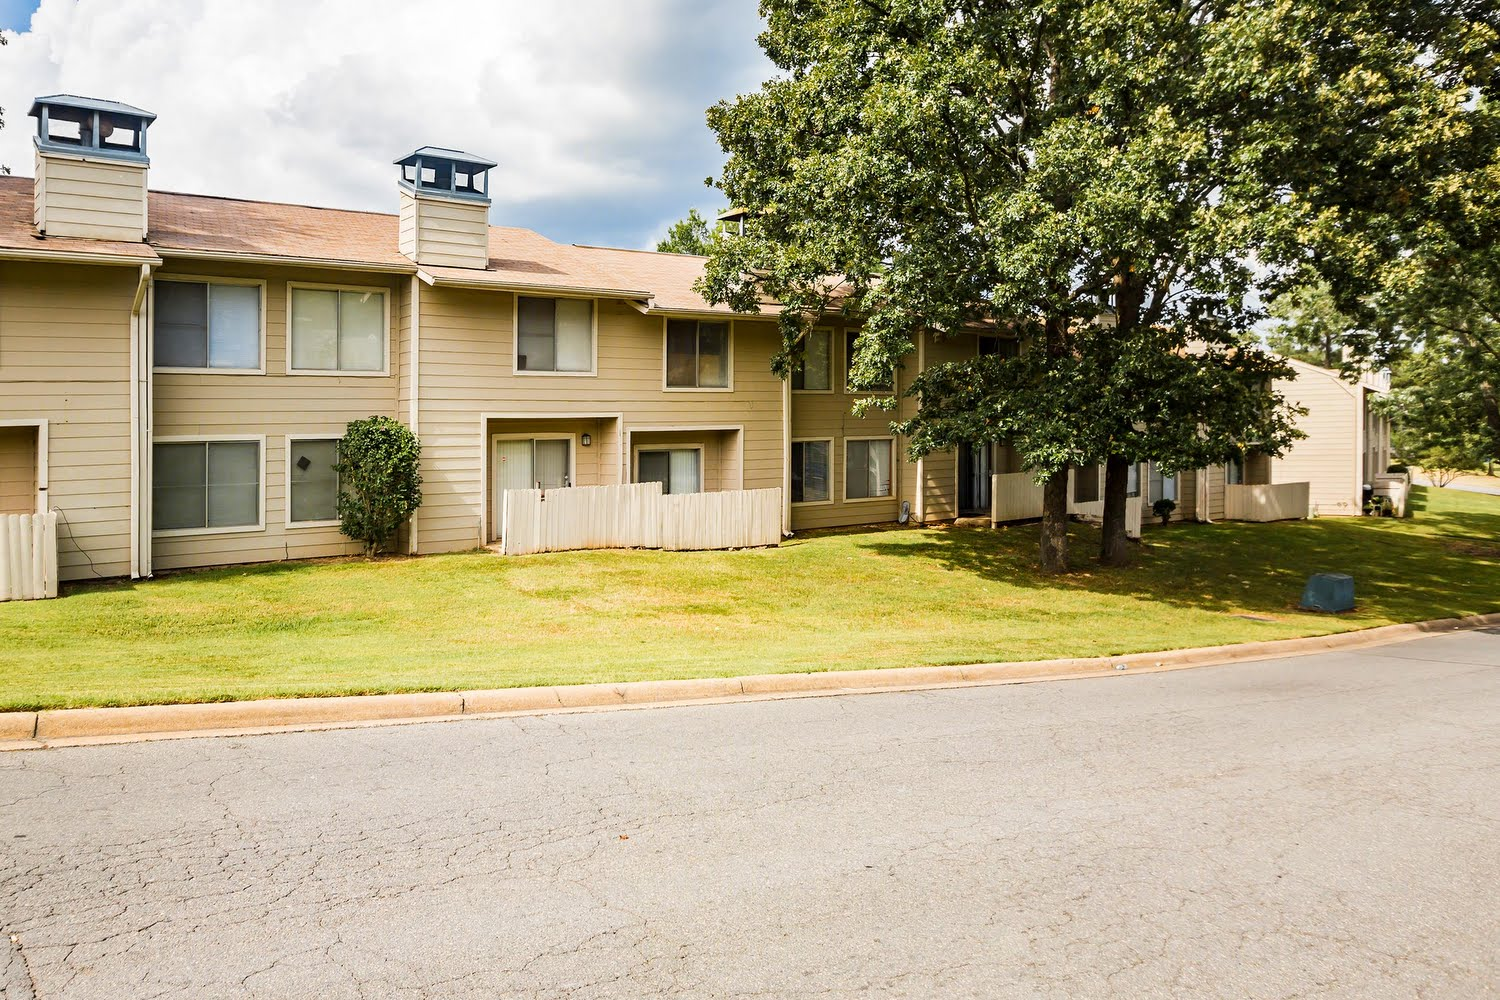 Barrington hills apartments in little rock arkansas for 3 bedroom apartments in little rock ar